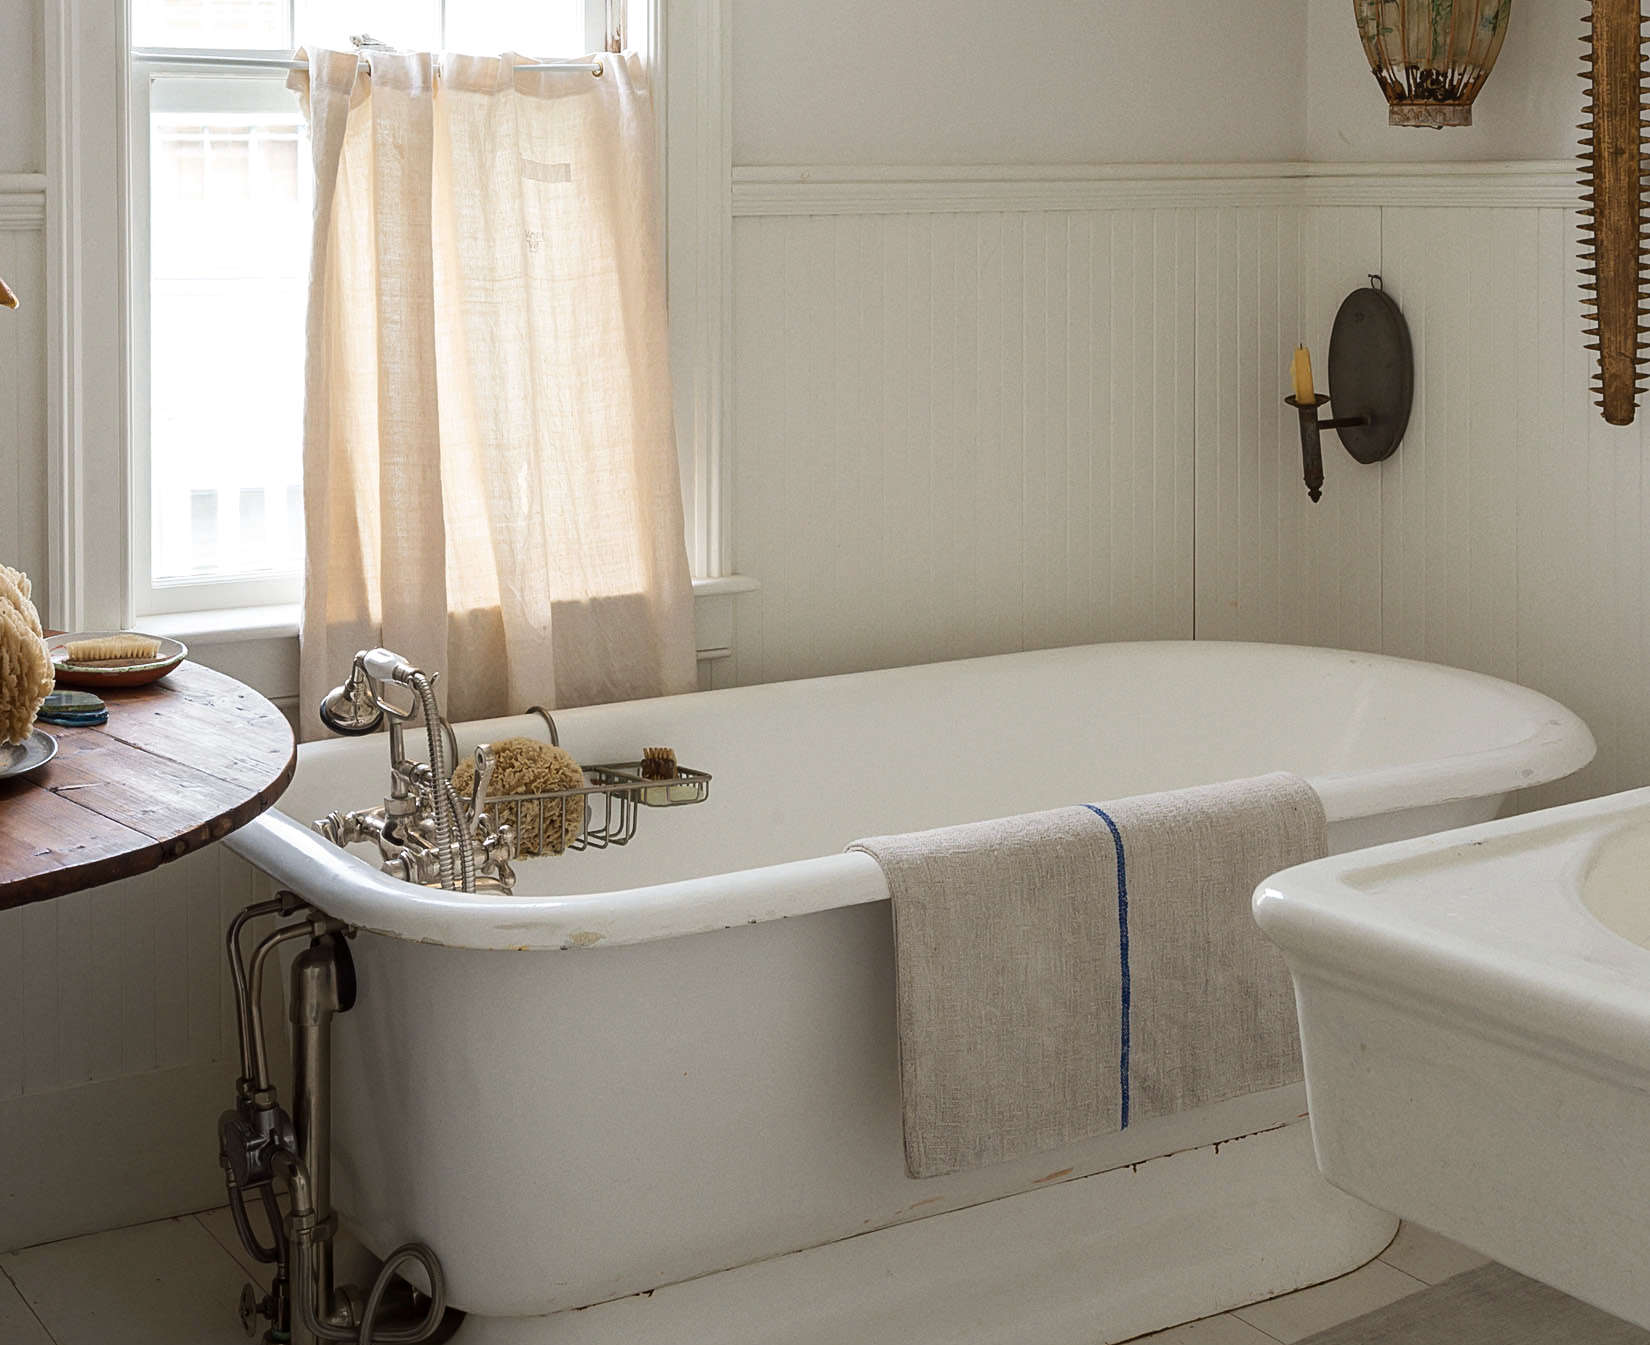 Bathroom of the Week: John Derian's Homage to Old Cape Cod